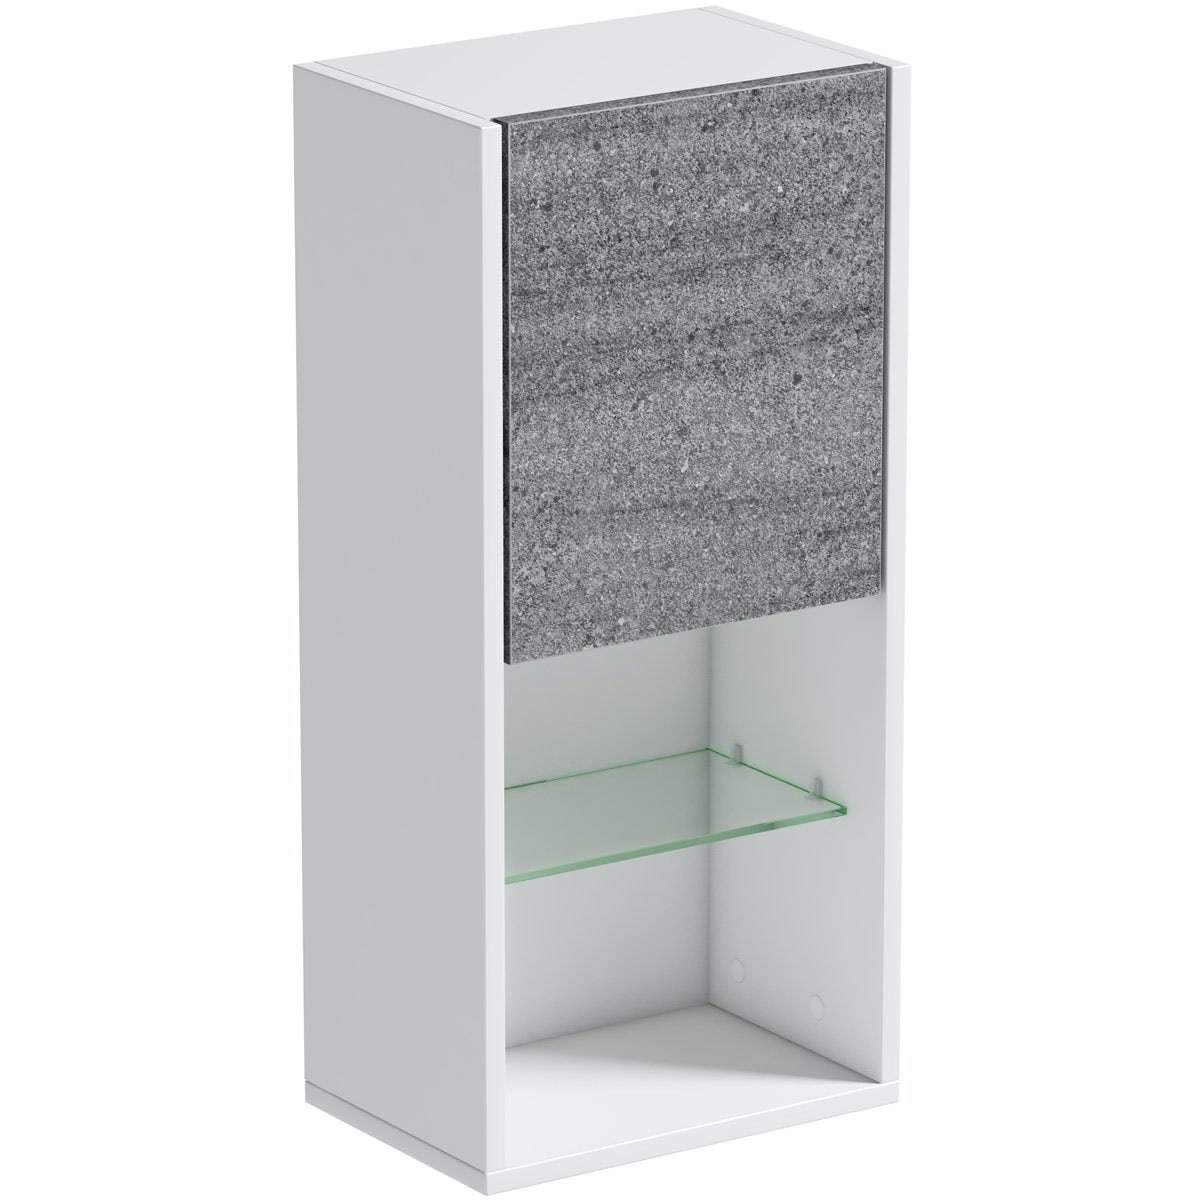 Mode Burton ice stone wall storage unit 330mm